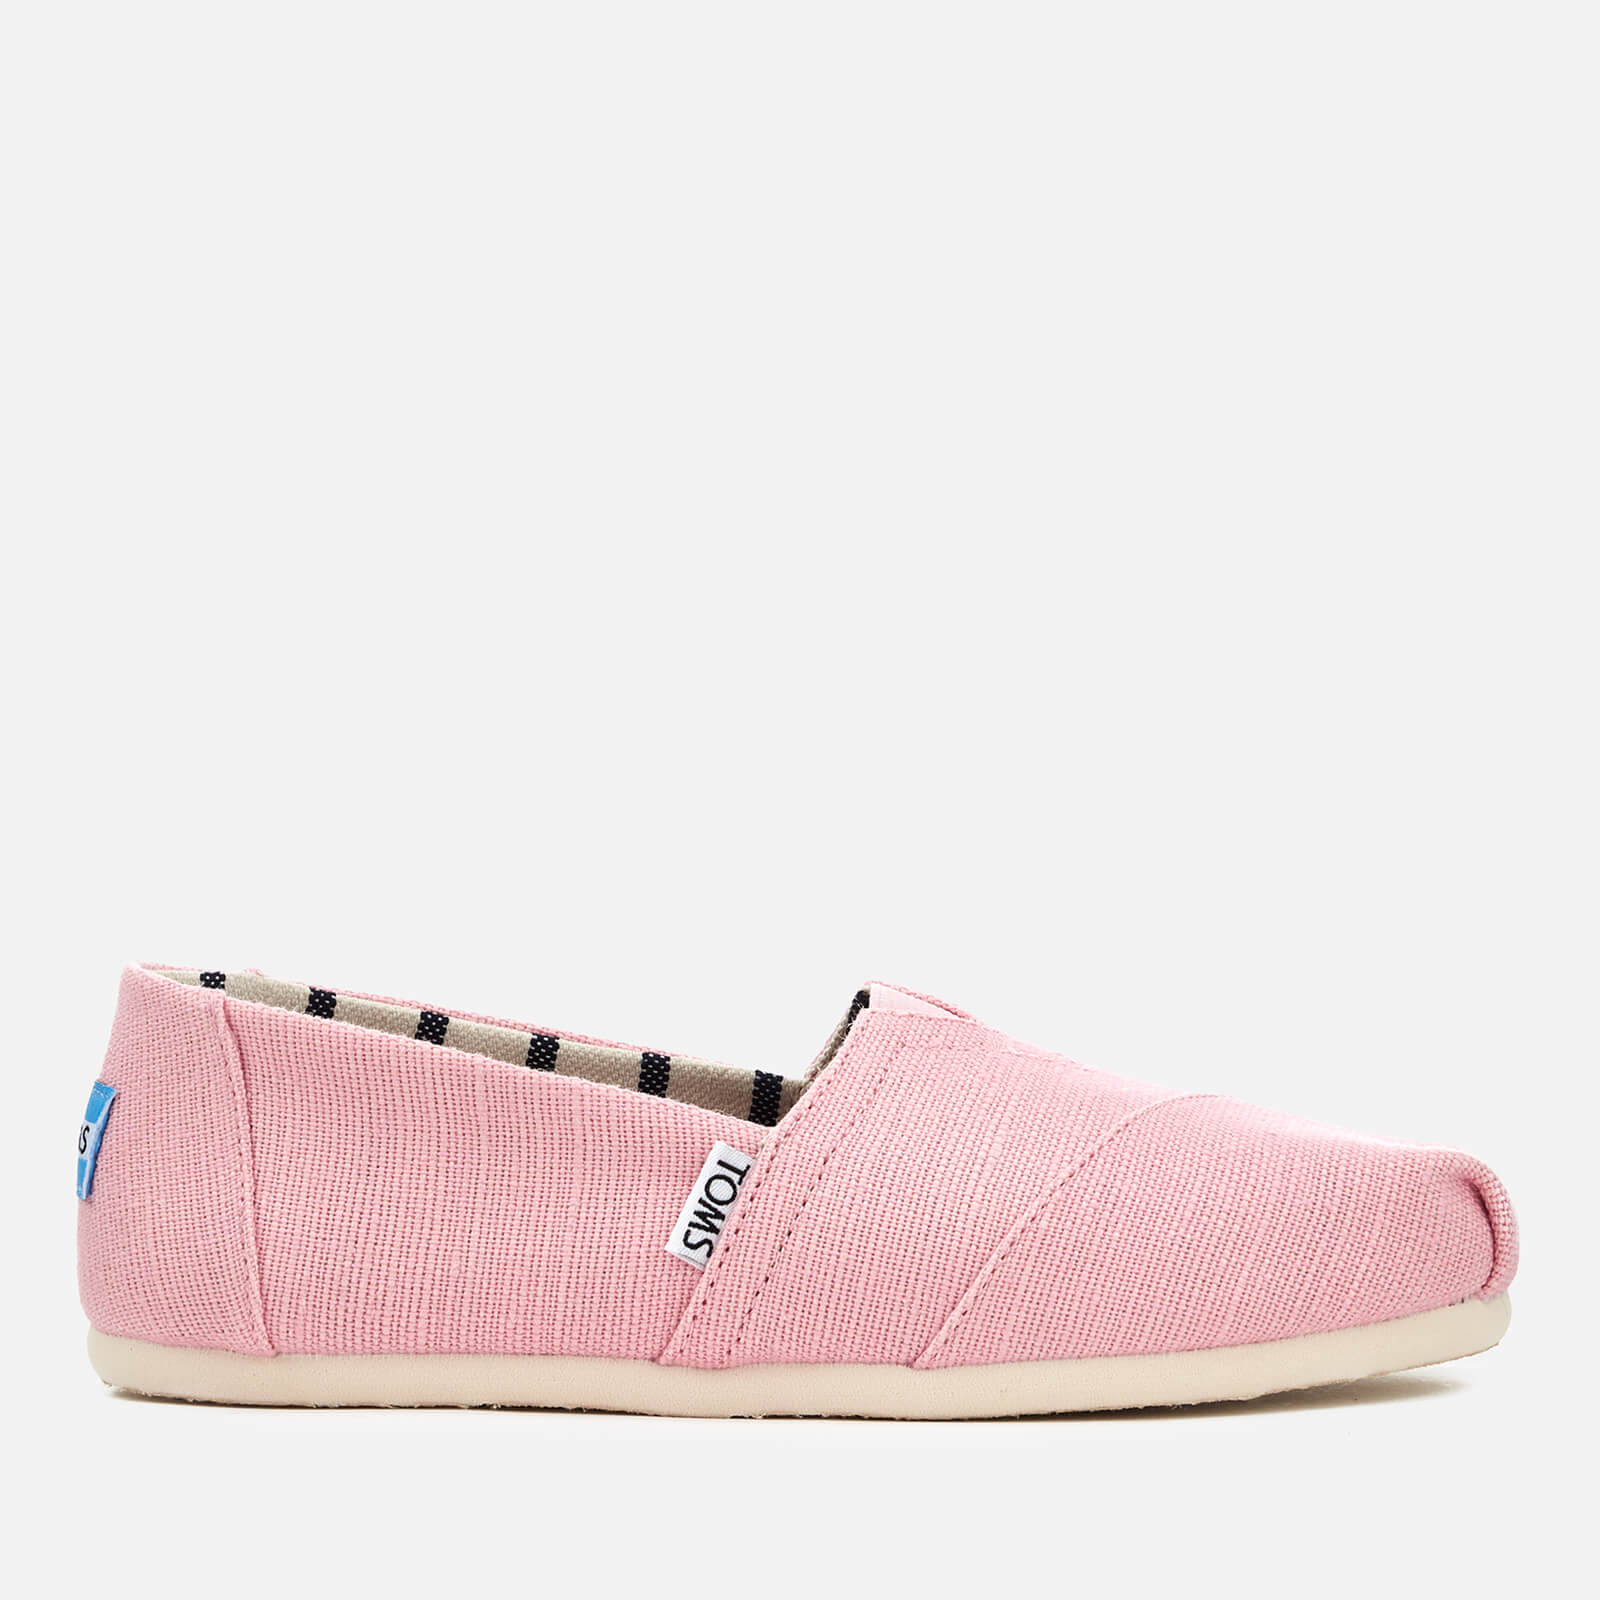 1d1628da413 TOMS Women's Alpargata Slip-On Pumps - Powder Pink | FREE UK Delivery |  Allsole